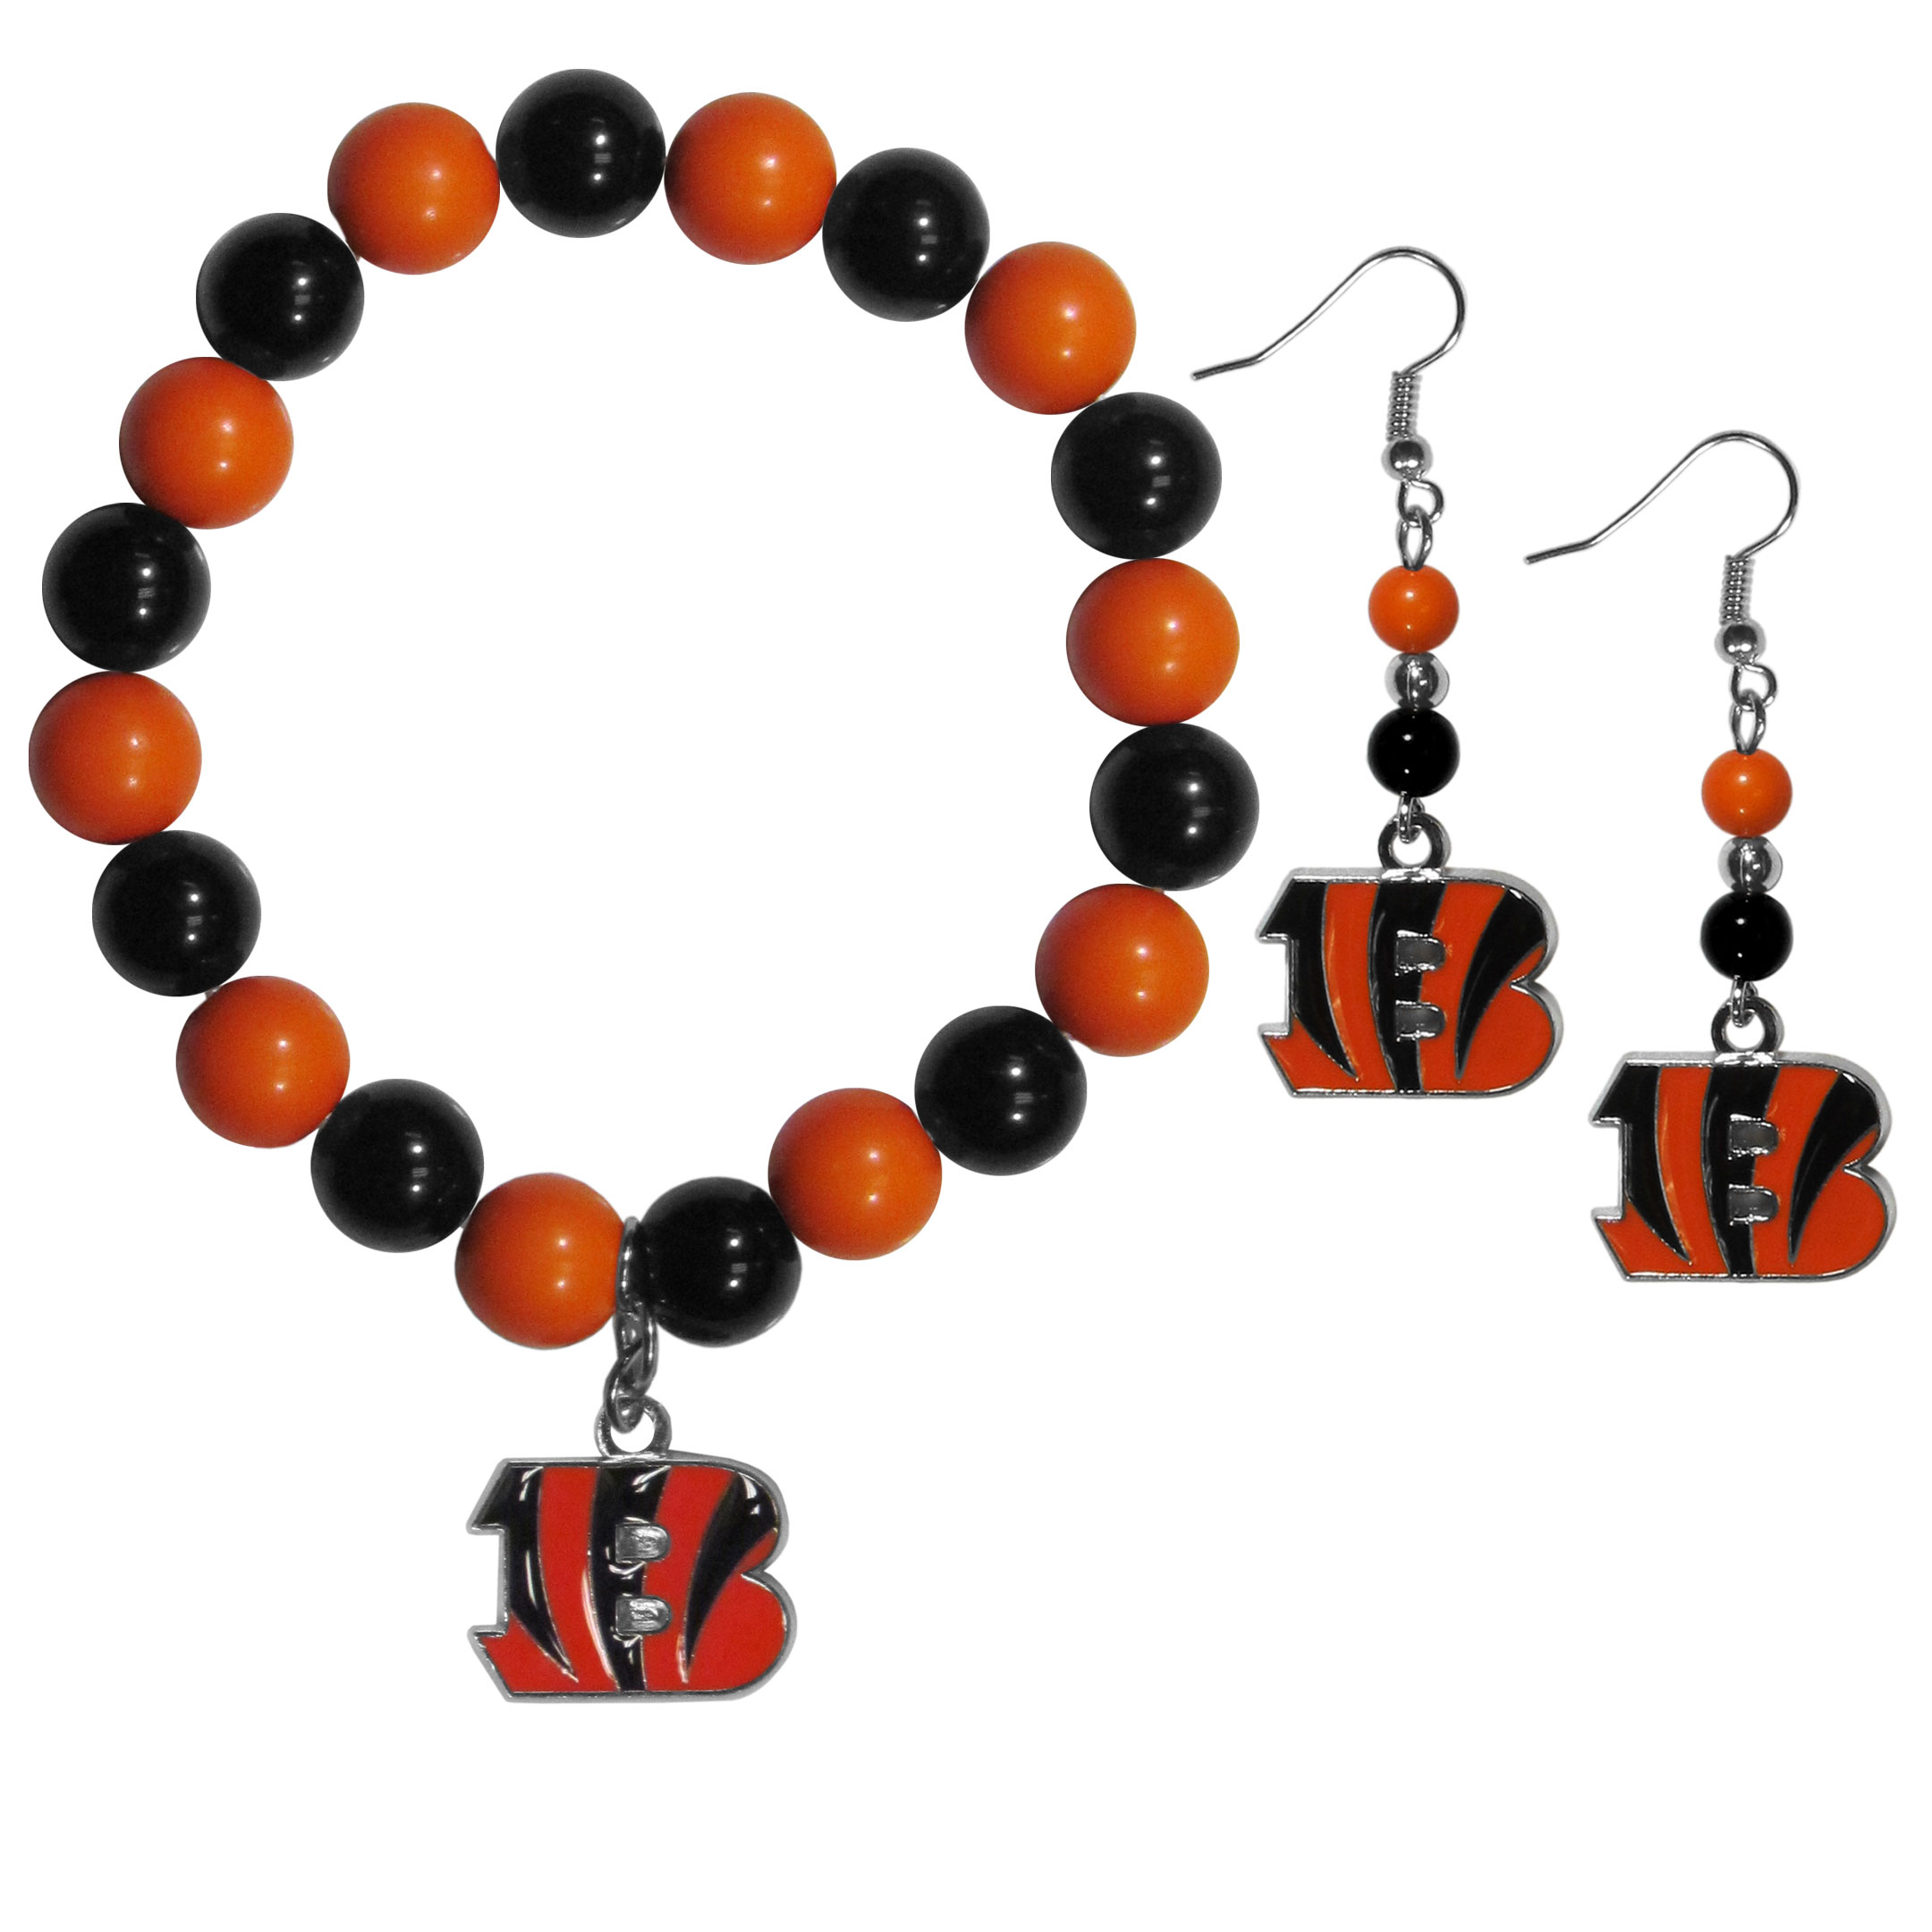 Cincinnati Bengals Fan Bead Earrings and Bracelet Set - This fun and colorful Cincinnati Bengals fan bead jewelry set is fun and casual with eye-catching beads in bright team colors. The fashionable dangle earrings feature a team colored beads that drop down to a carved and enameled charm. The stretch bracelet has larger matching beads that make a striking statement and have a matching team charm. These sassy yet sporty jewelry pieces make a perfect gift for any female fan. Spice up your game-day outfit with these fun colorful earrings and bracelet that are also cute enough for any day.